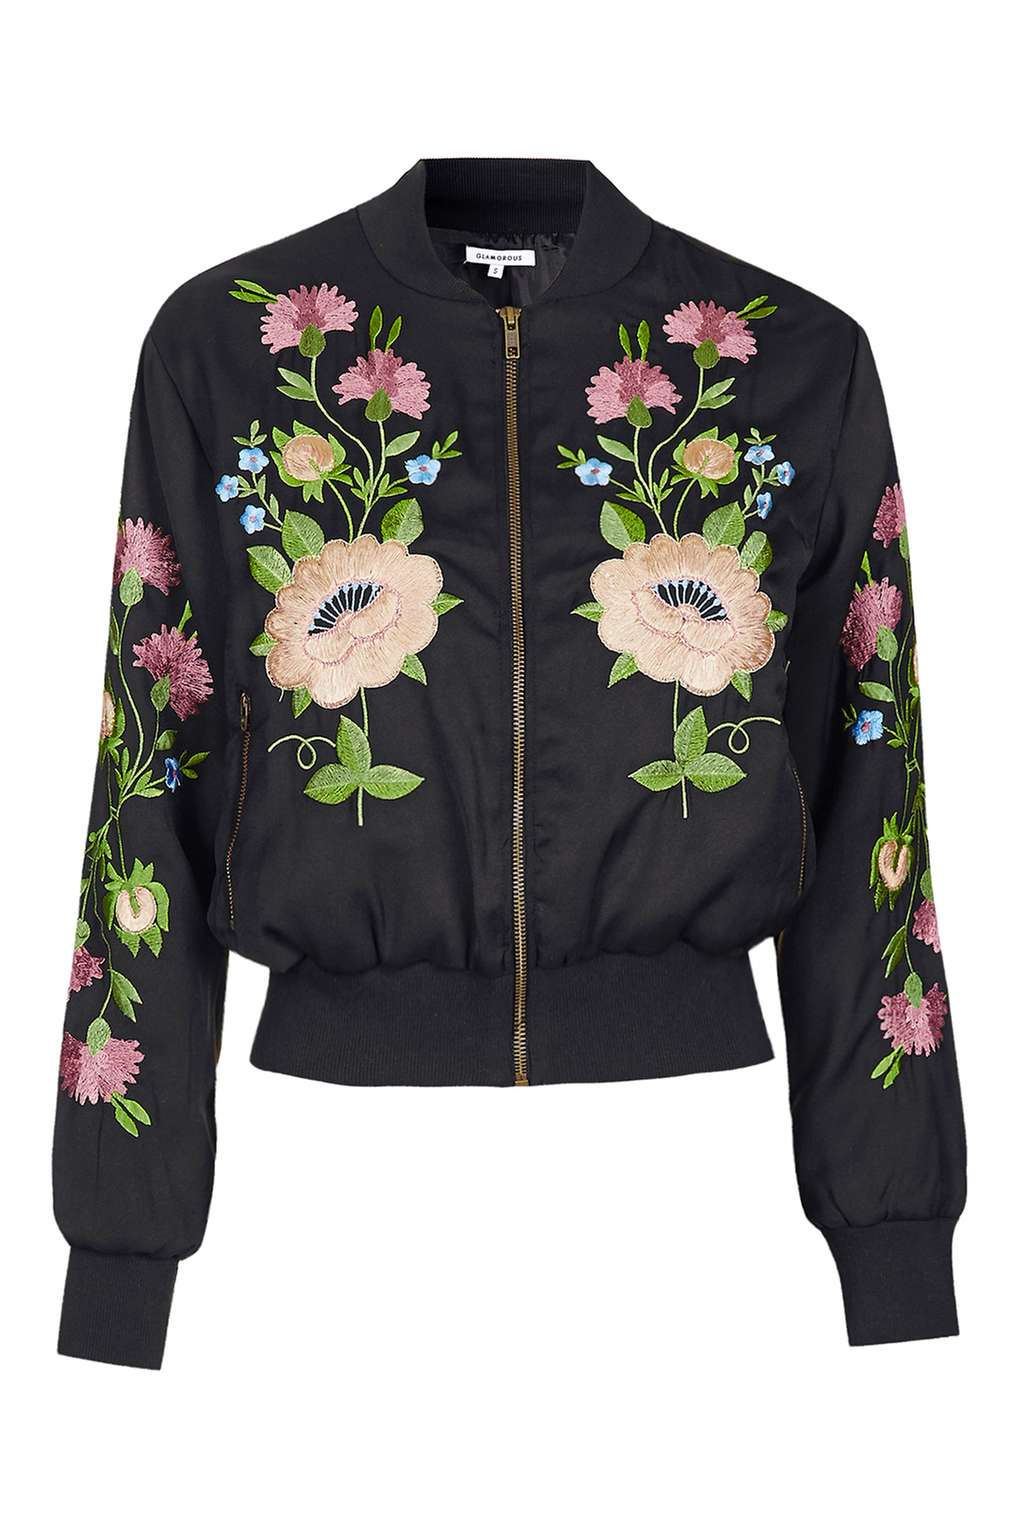 Topshop floral embroidered bomber jacket by glamorous in